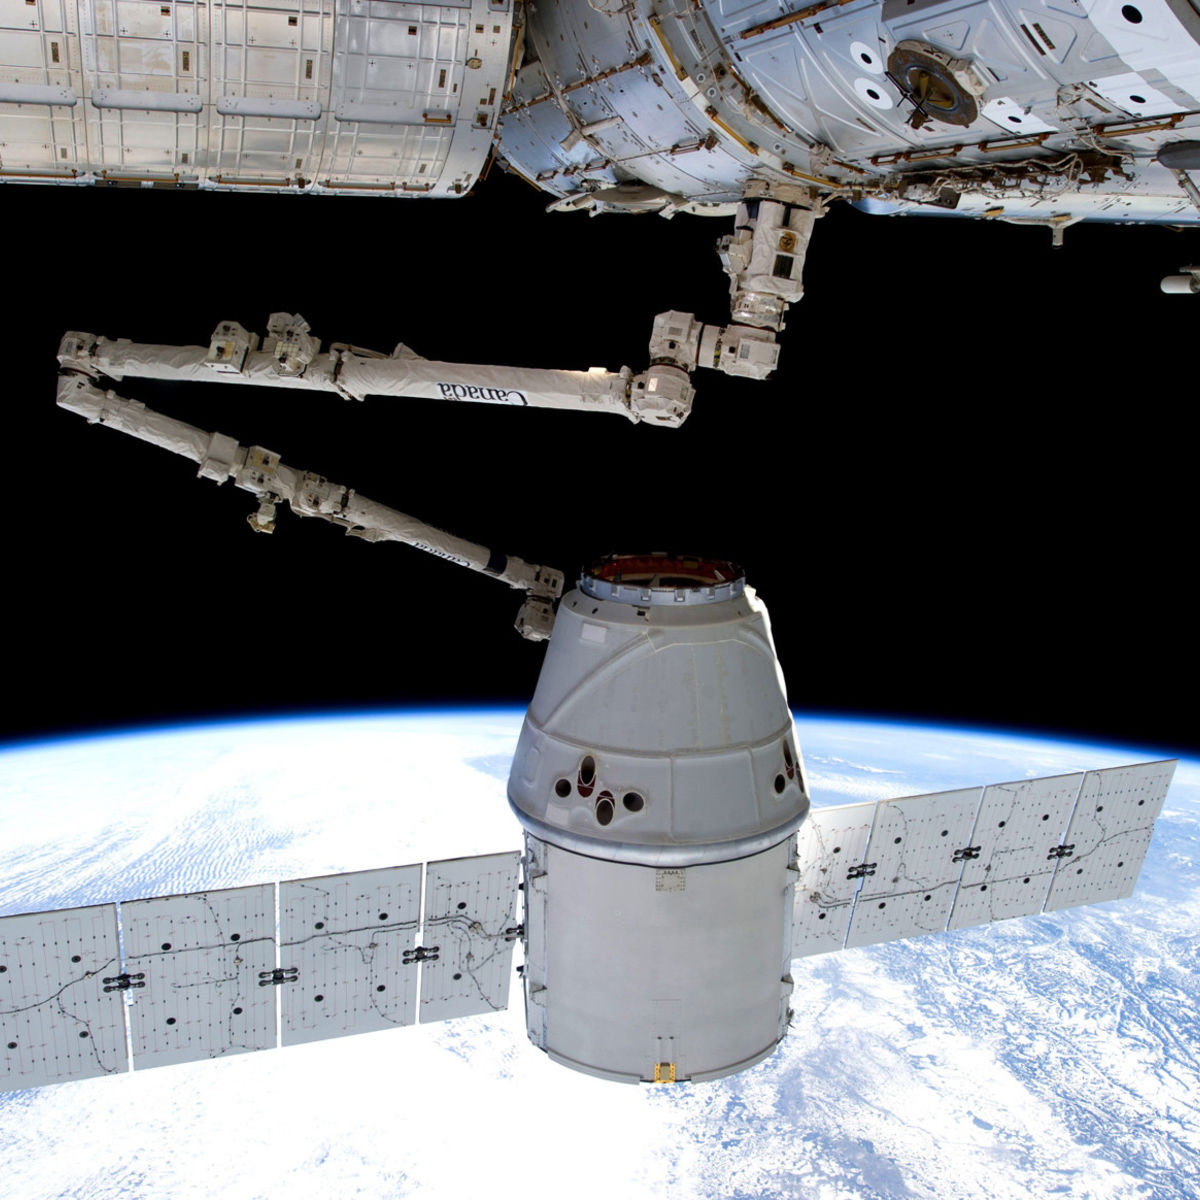 SpaceX Dragon and the International Space Station: The miracle of berth. Credit: NASA